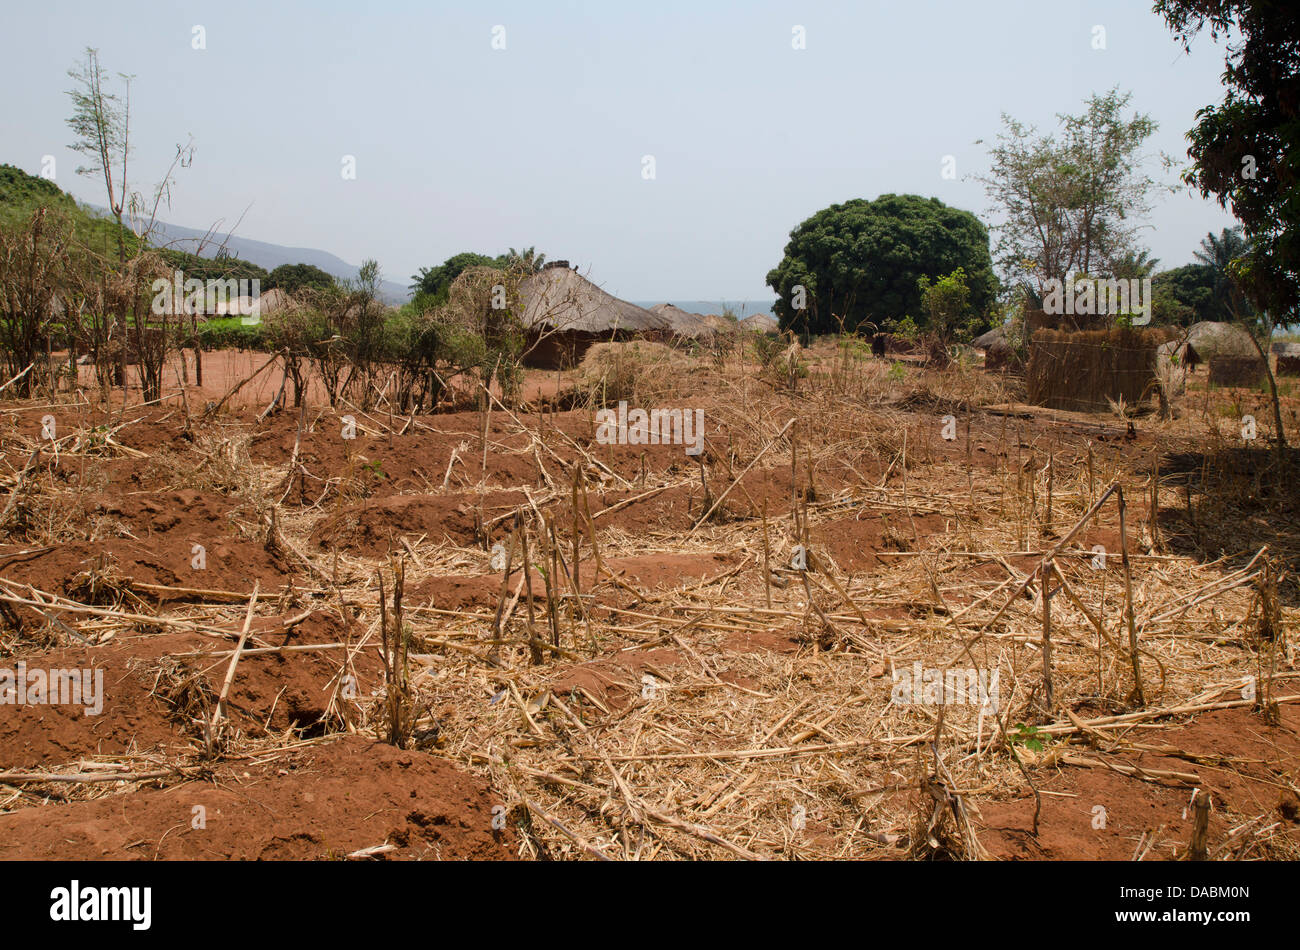 zambia agriculture stockfotos zambia agriculture bilder alamy. Black Bedroom Furniture Sets. Home Design Ideas